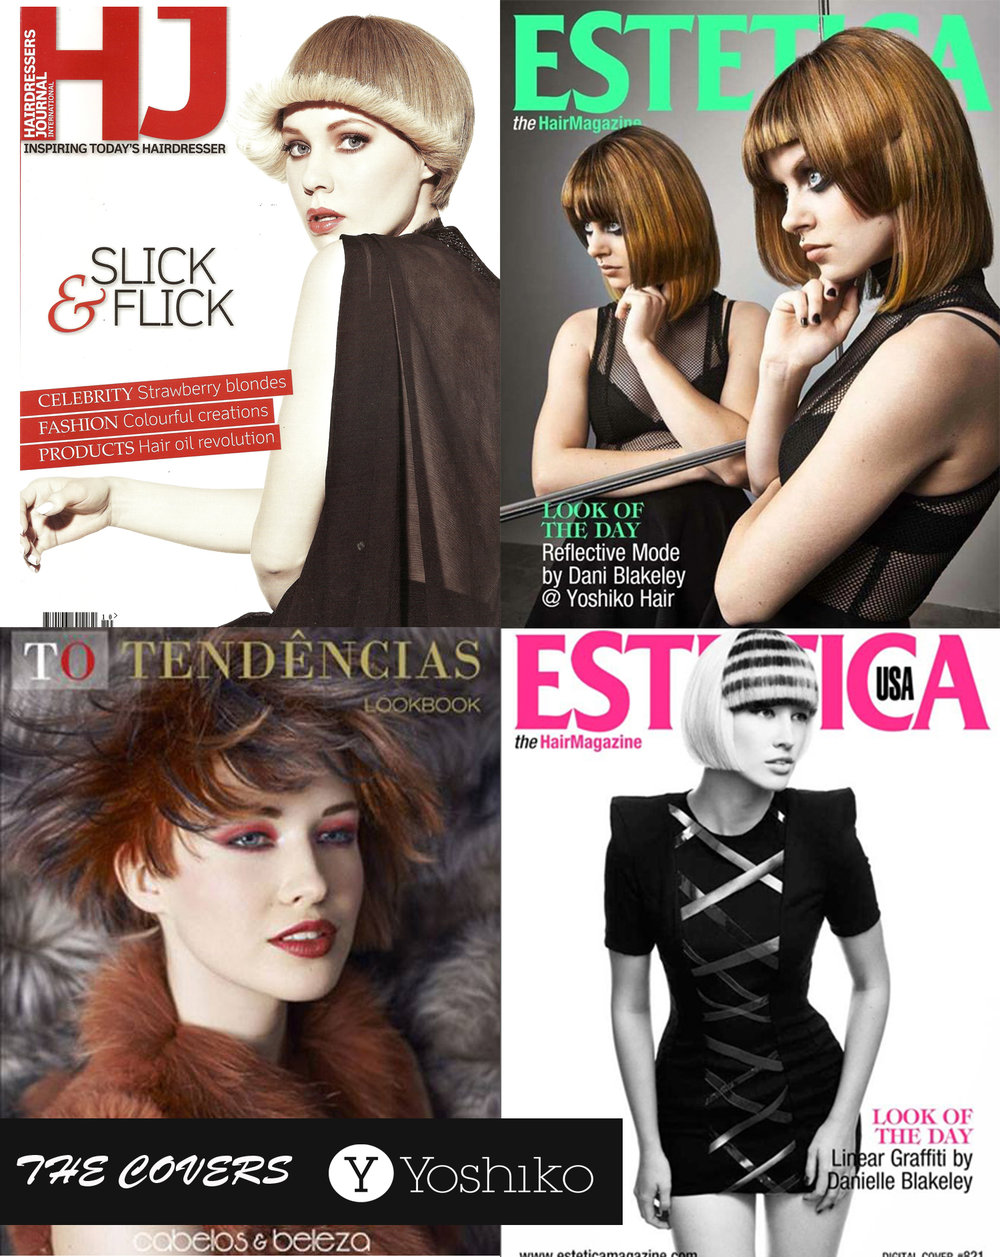 yoshiko+hair_cover_hairdresser_st+kilda_+melbourneFront+Covers+Web-1.jpg